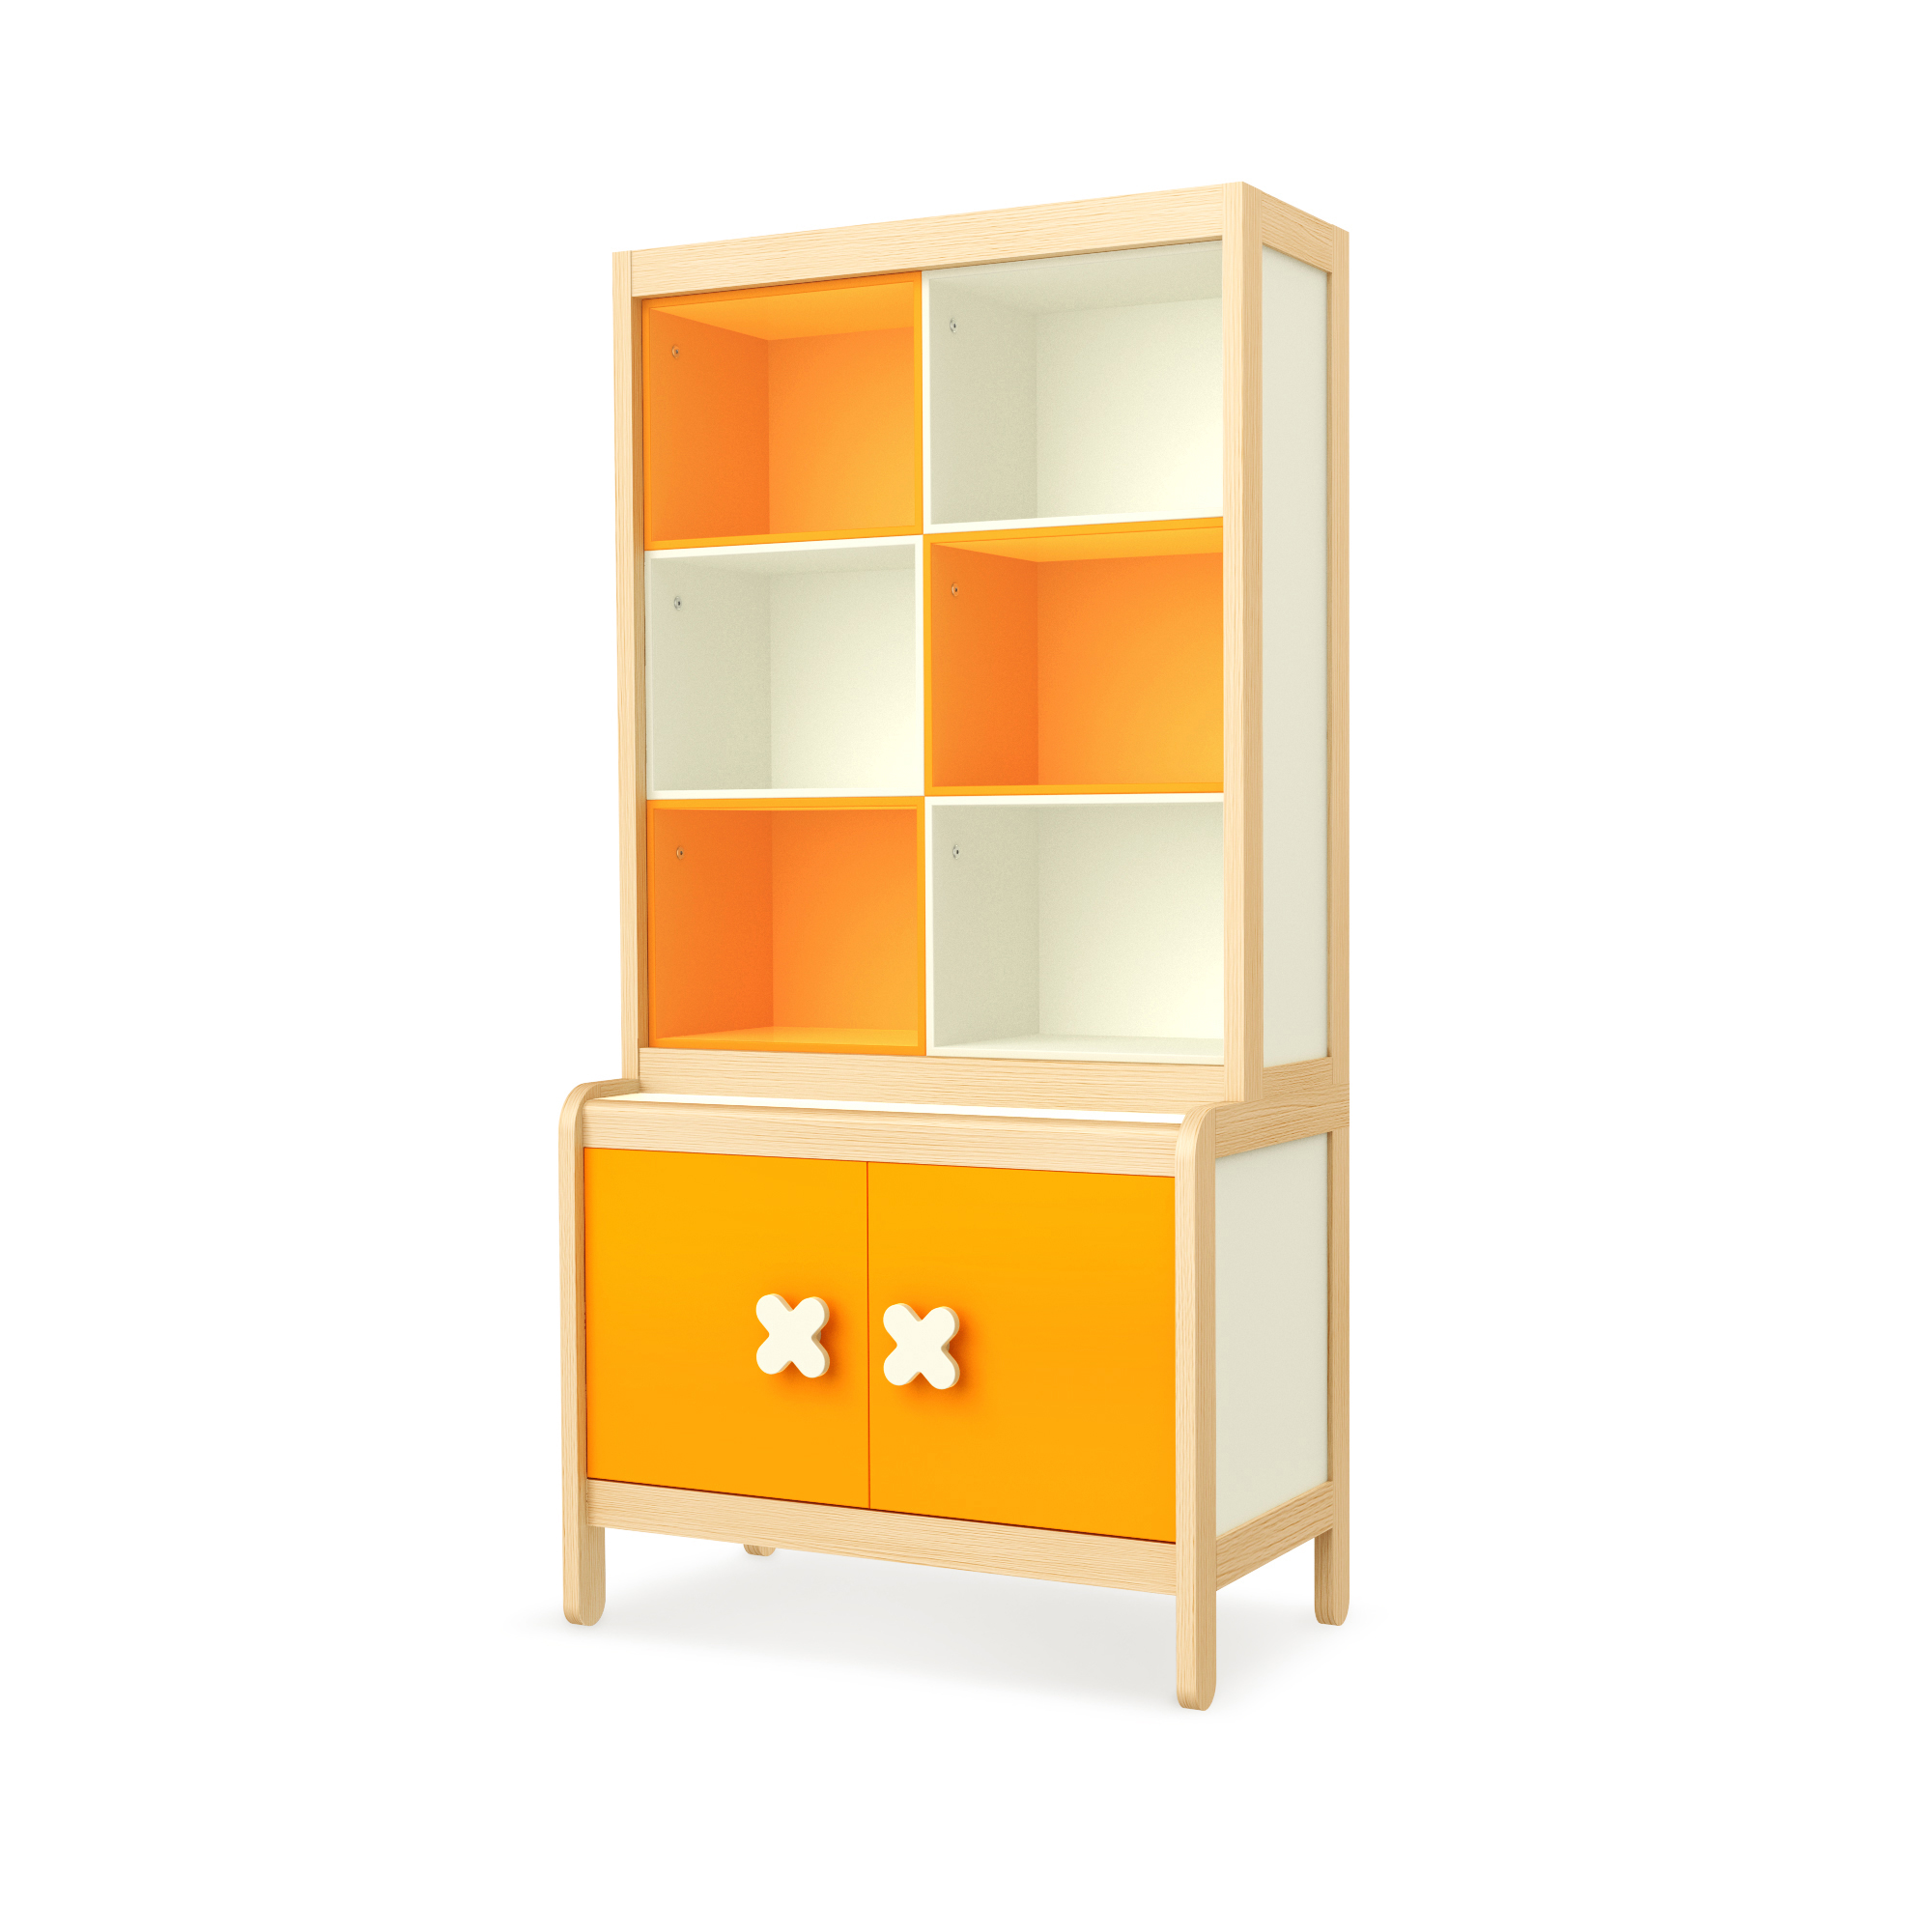 Sideboard Simple Orange mit Buchregal, Timoore